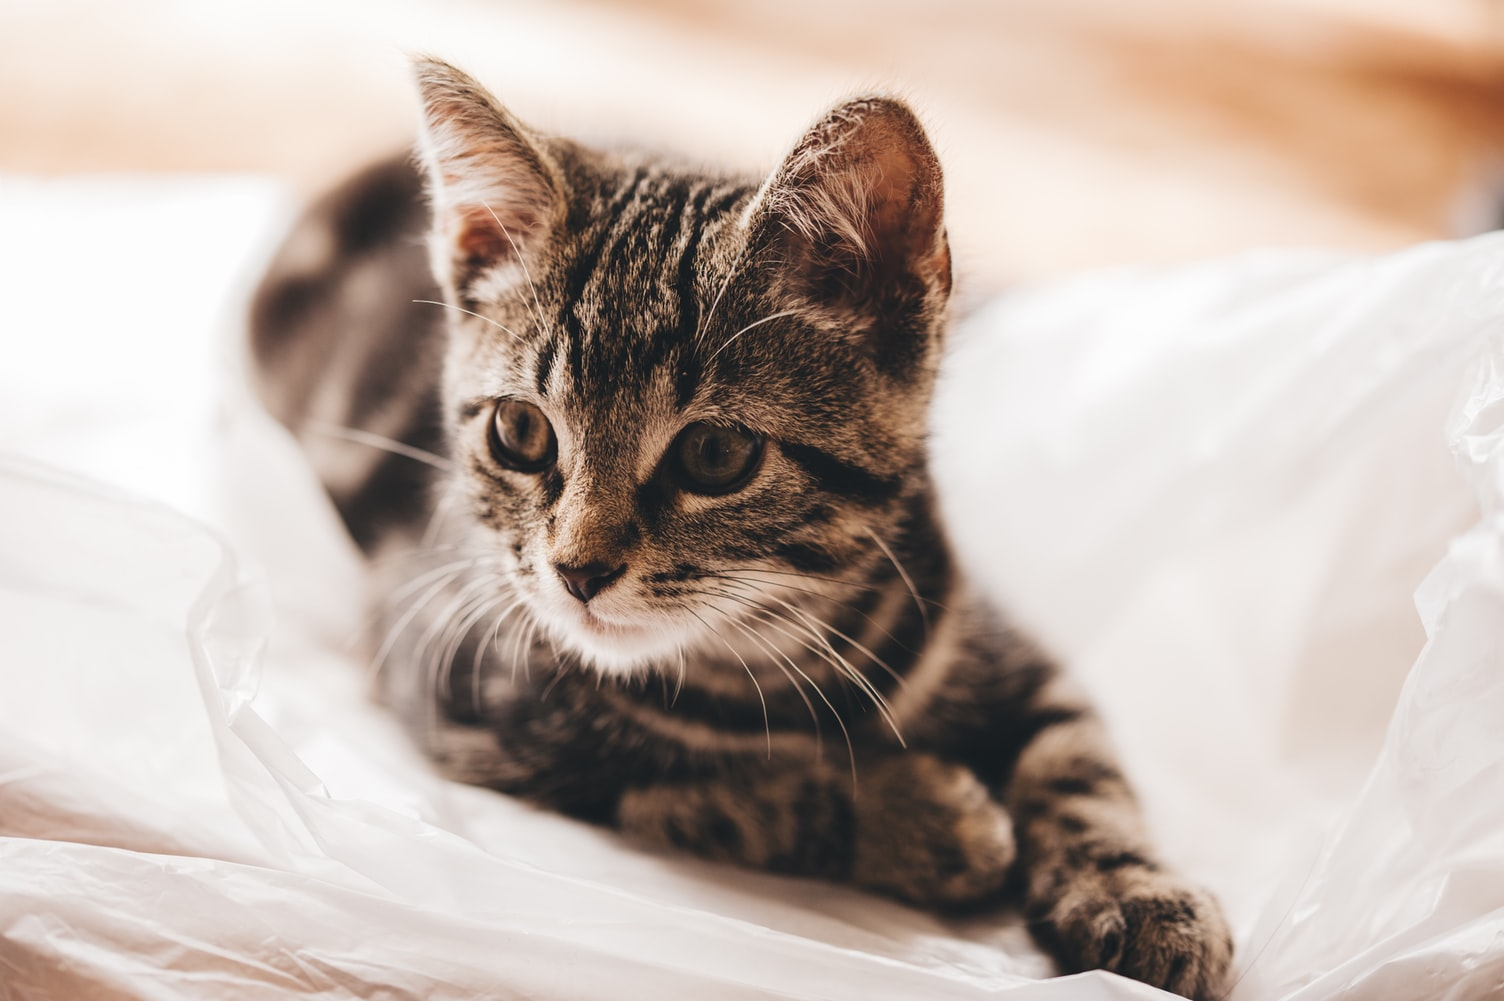 Young tabby cat laying on a white blanket